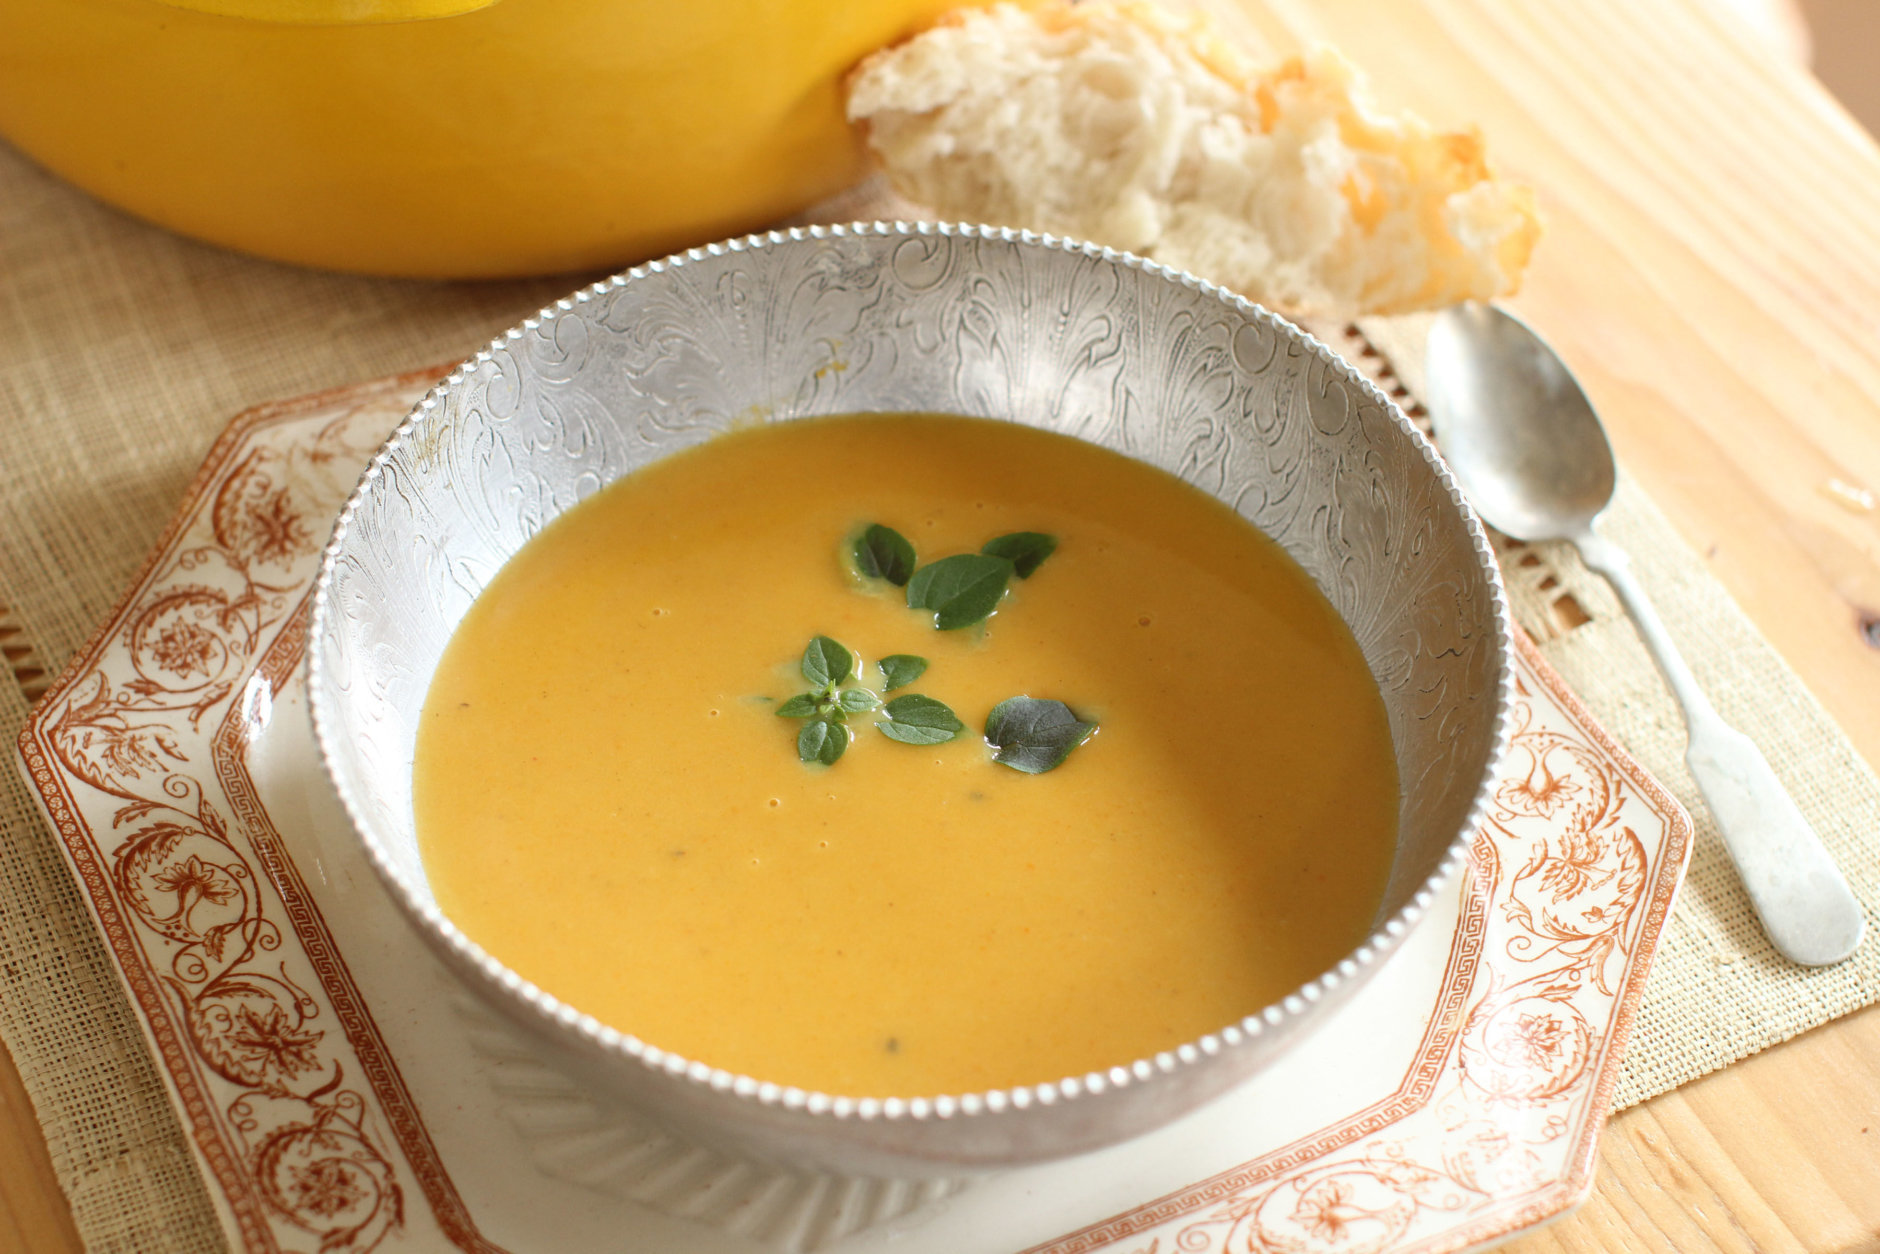 This Sept. 14, 2015 photo shows Indian butternut squash carrot soup in Concord, N.H. This dish is from a recipe by Katie Workman. (AP Photo/Matthew Mead)